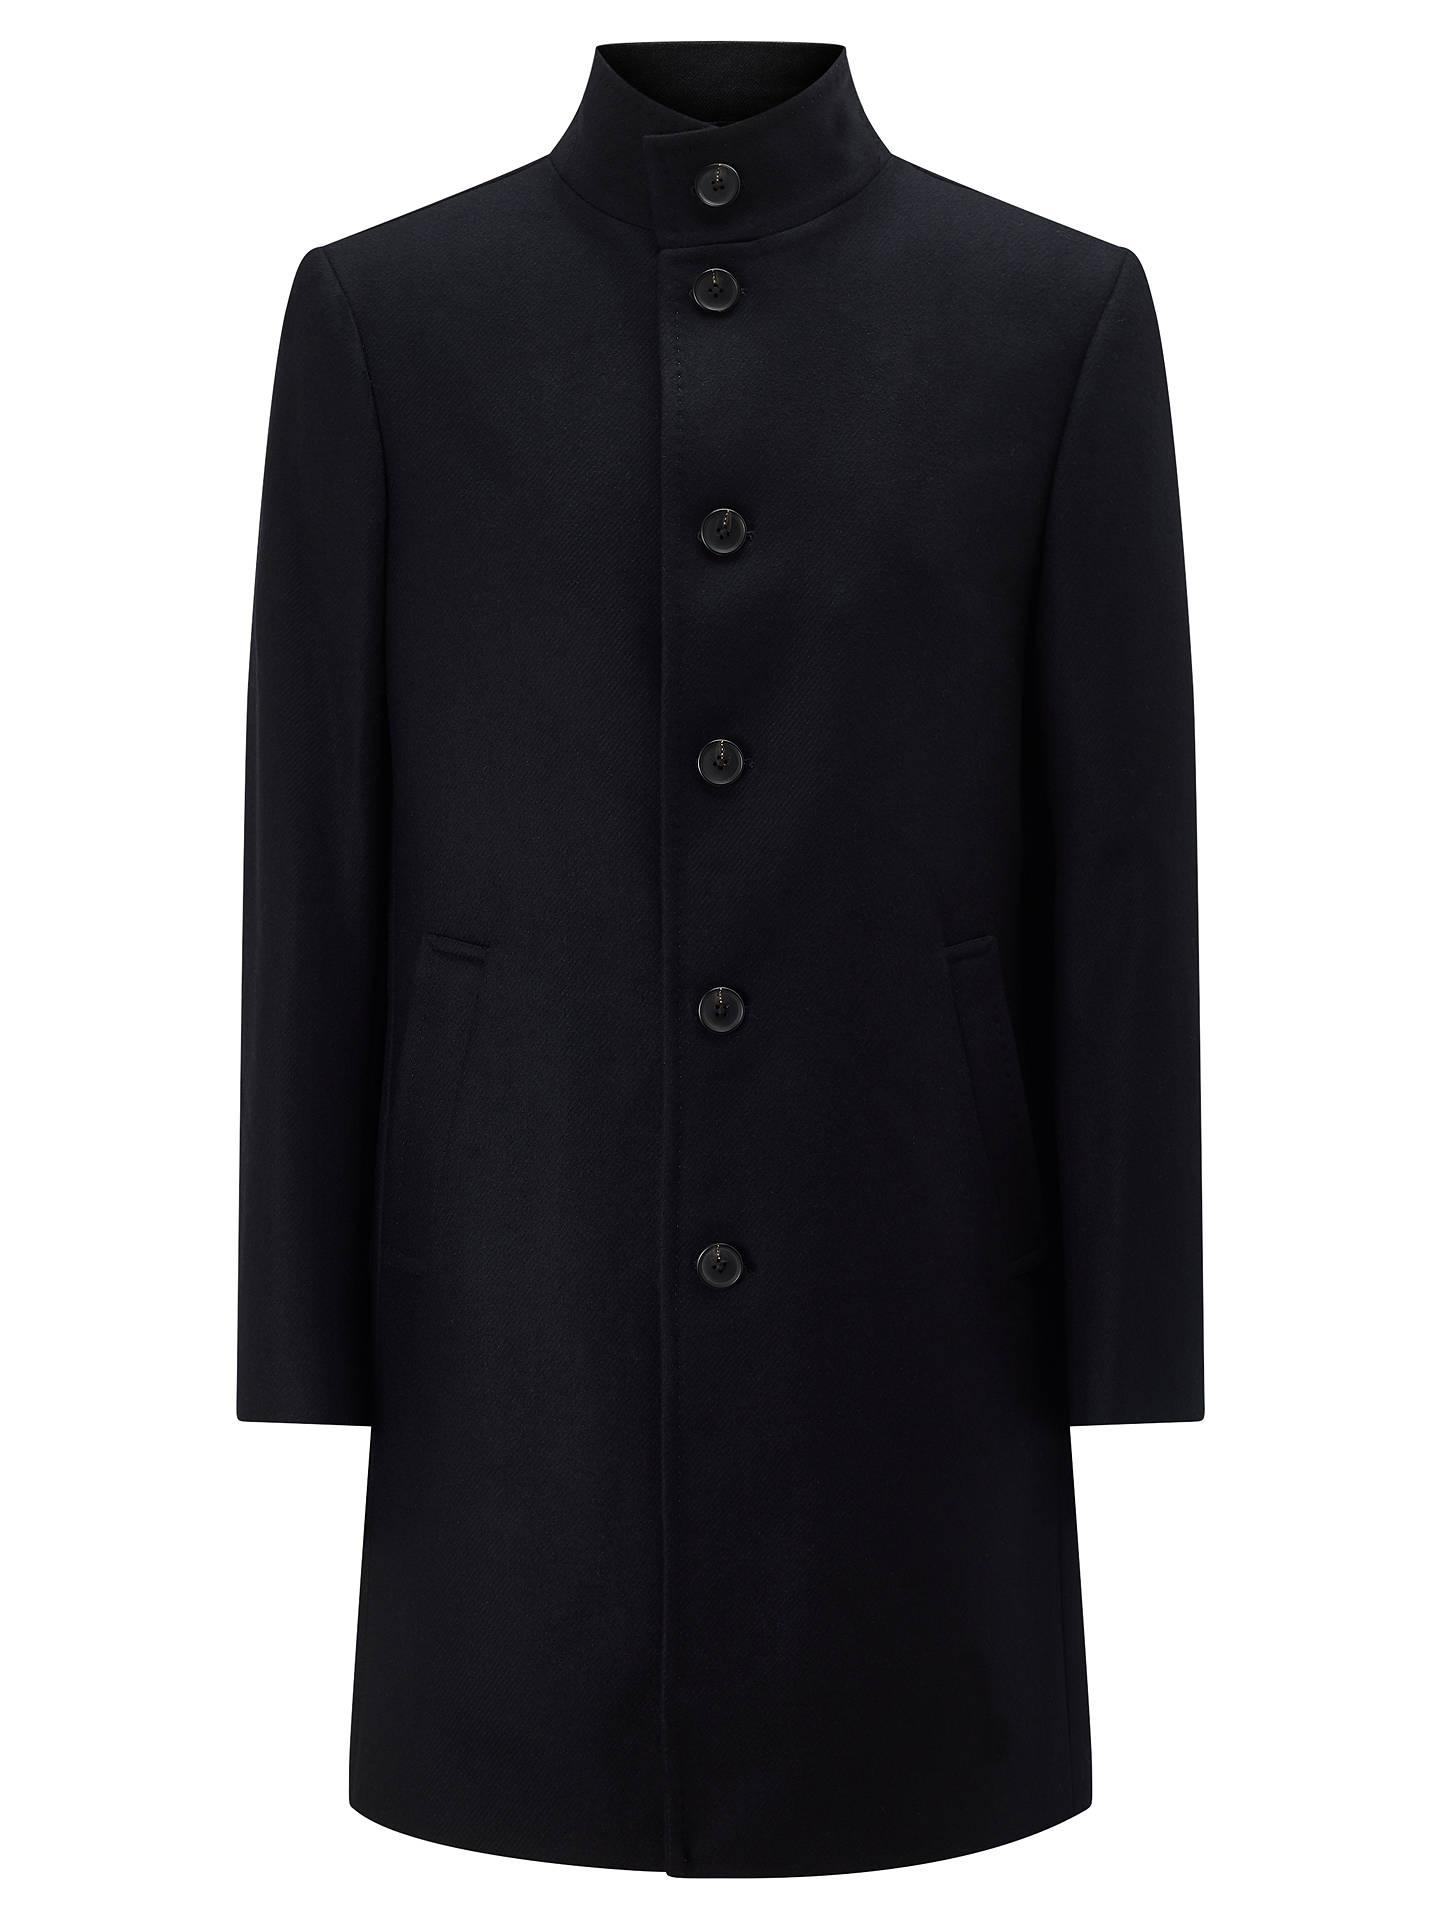 BuyJohn Lewis & Partners Italian Funnel Neck Overcoat, Navy, 36R Online at johnlewis.com